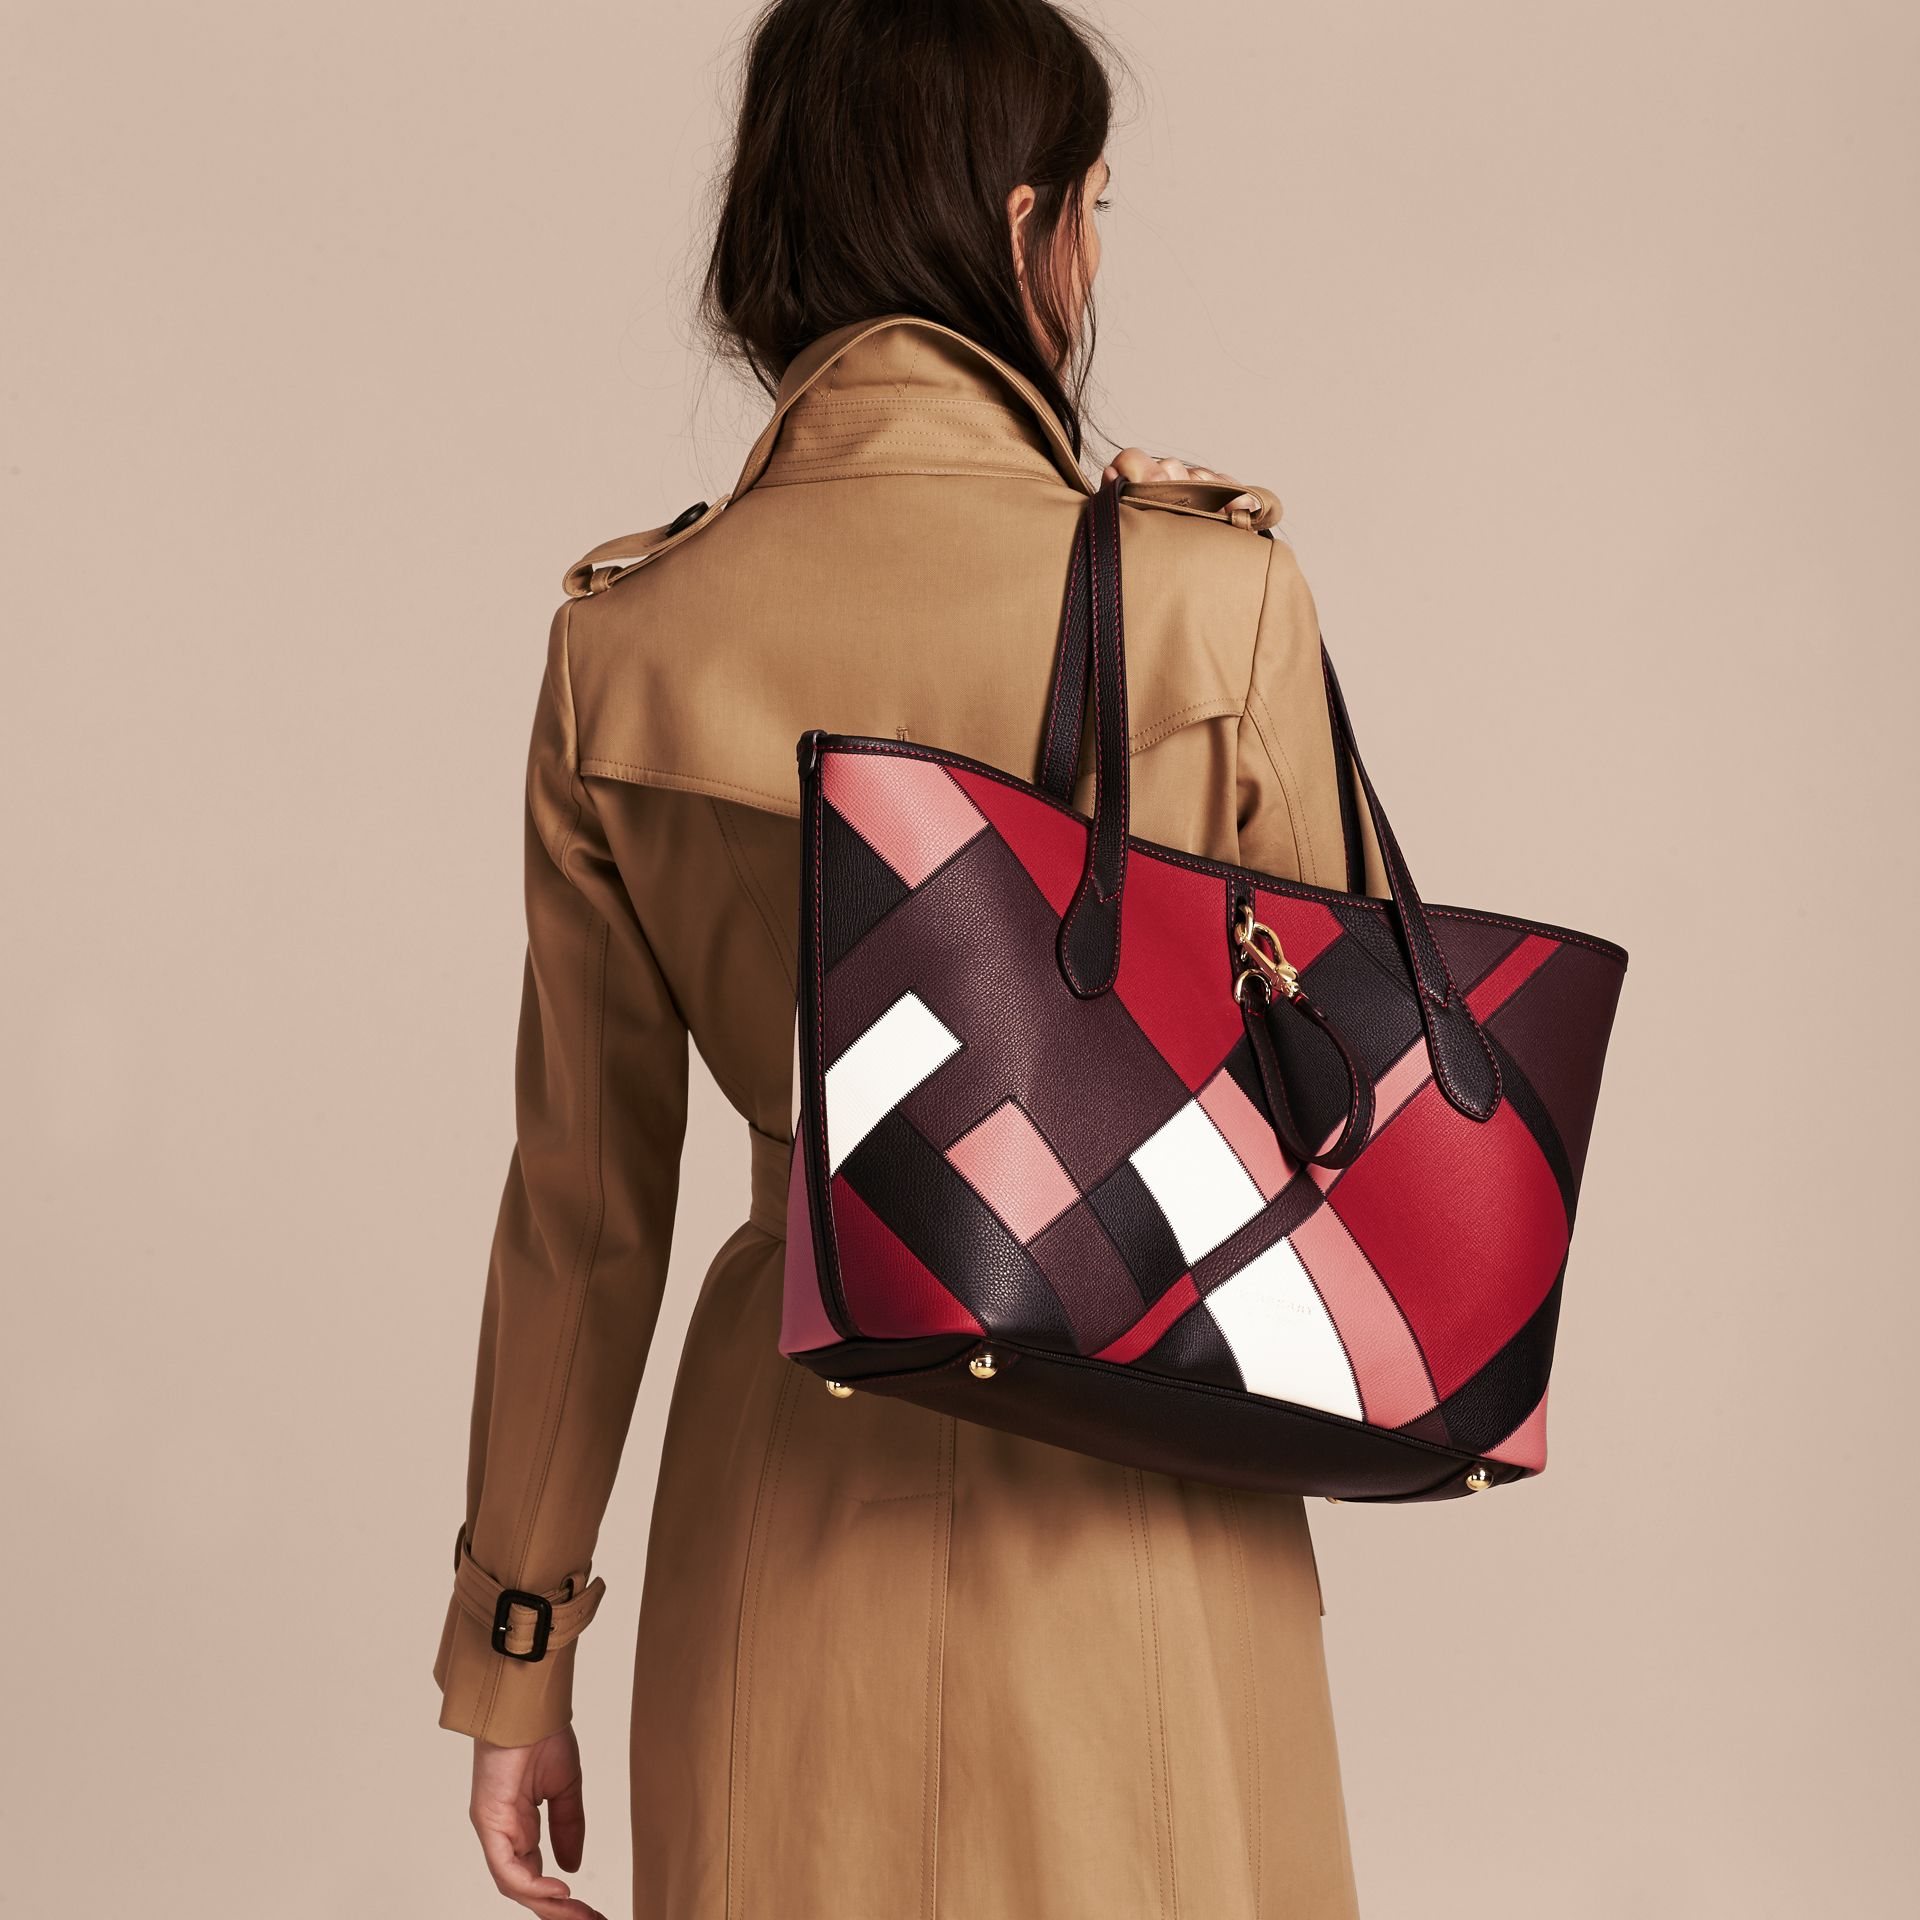 Medium Patchwork Grainy Leather Tote Bag in Pink - Women | Burberry - gallery image 3